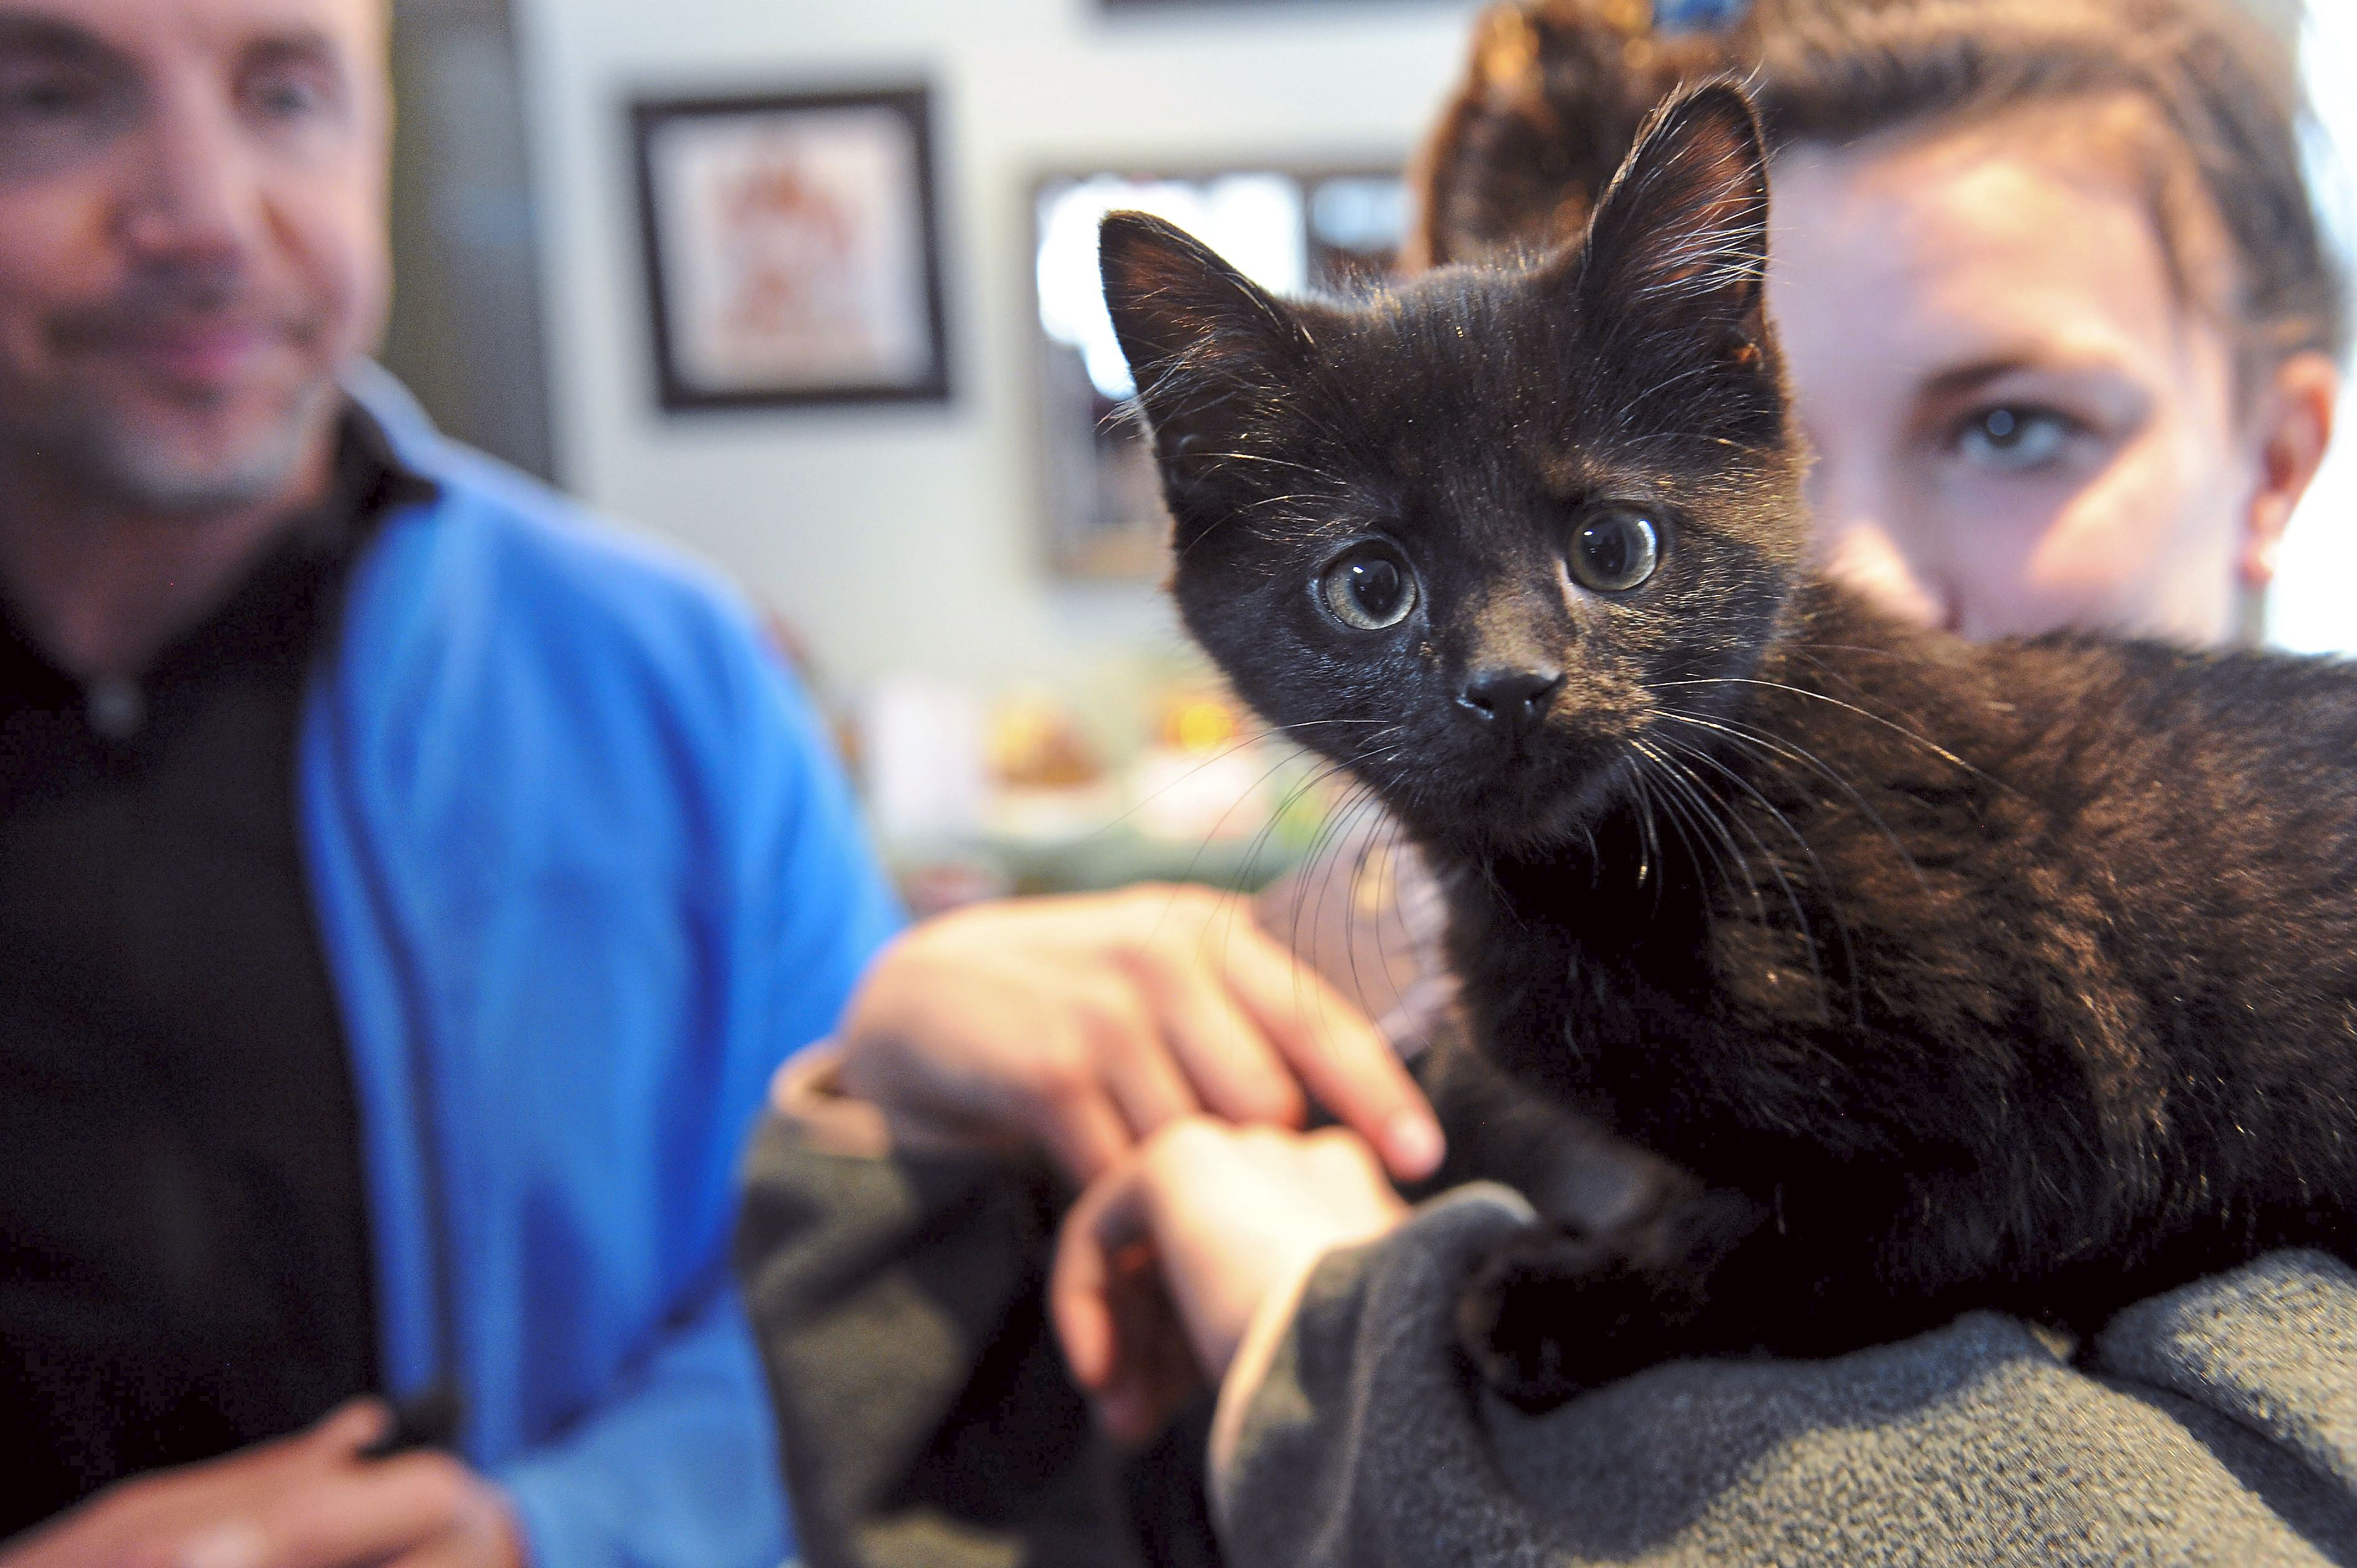 20171225ng-Kitten1 Piper Reck, 14, and her father Howard Reck look on as their 9-week-old kitten poses for the camera Monday, Dec. 25, 2017, at their home in Squirrel Hill.